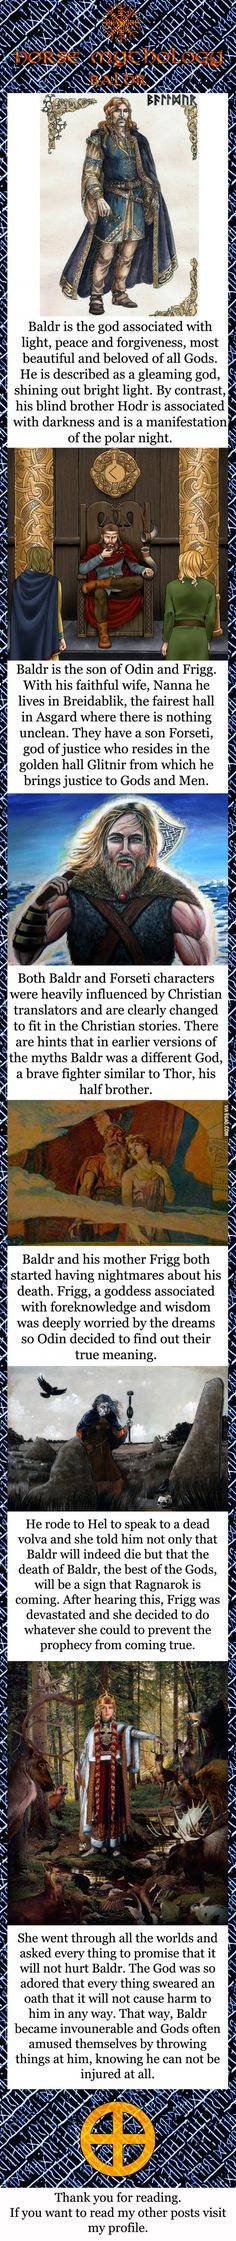 Norse mythology - Baldr But he does die cause mistletoe did not form this oath and Loki give a mistletoe bow and arrow to Haldr who is blind and accidentally kills Baldr with it. Viking Warrior, Viking Age, Mythological Creatures, Mythical Creatures, Fairytale Creatures, Norse Religion, World Mythology, Loki Mythology, Viking Culture